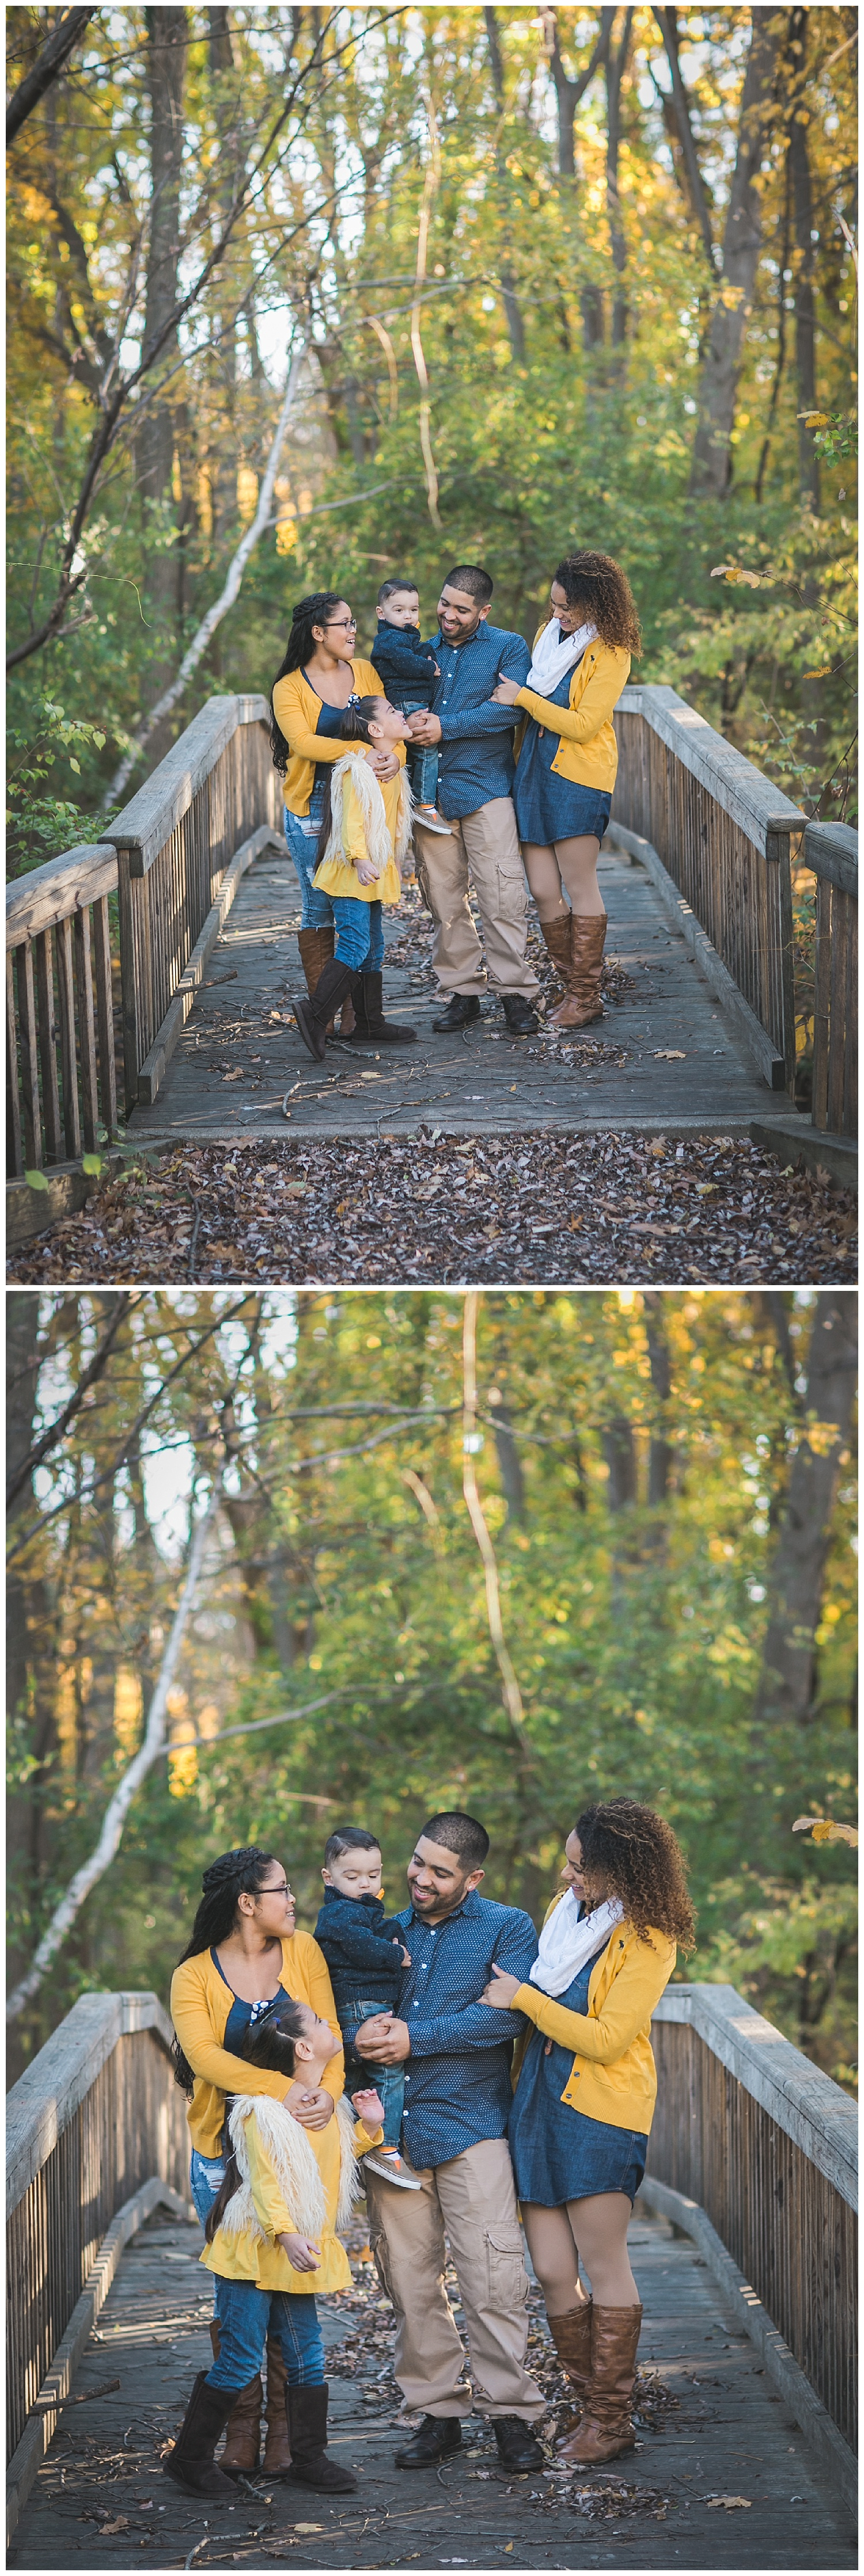 Harley School Family session - Rochester NY - Whimsy roots 2.jpg